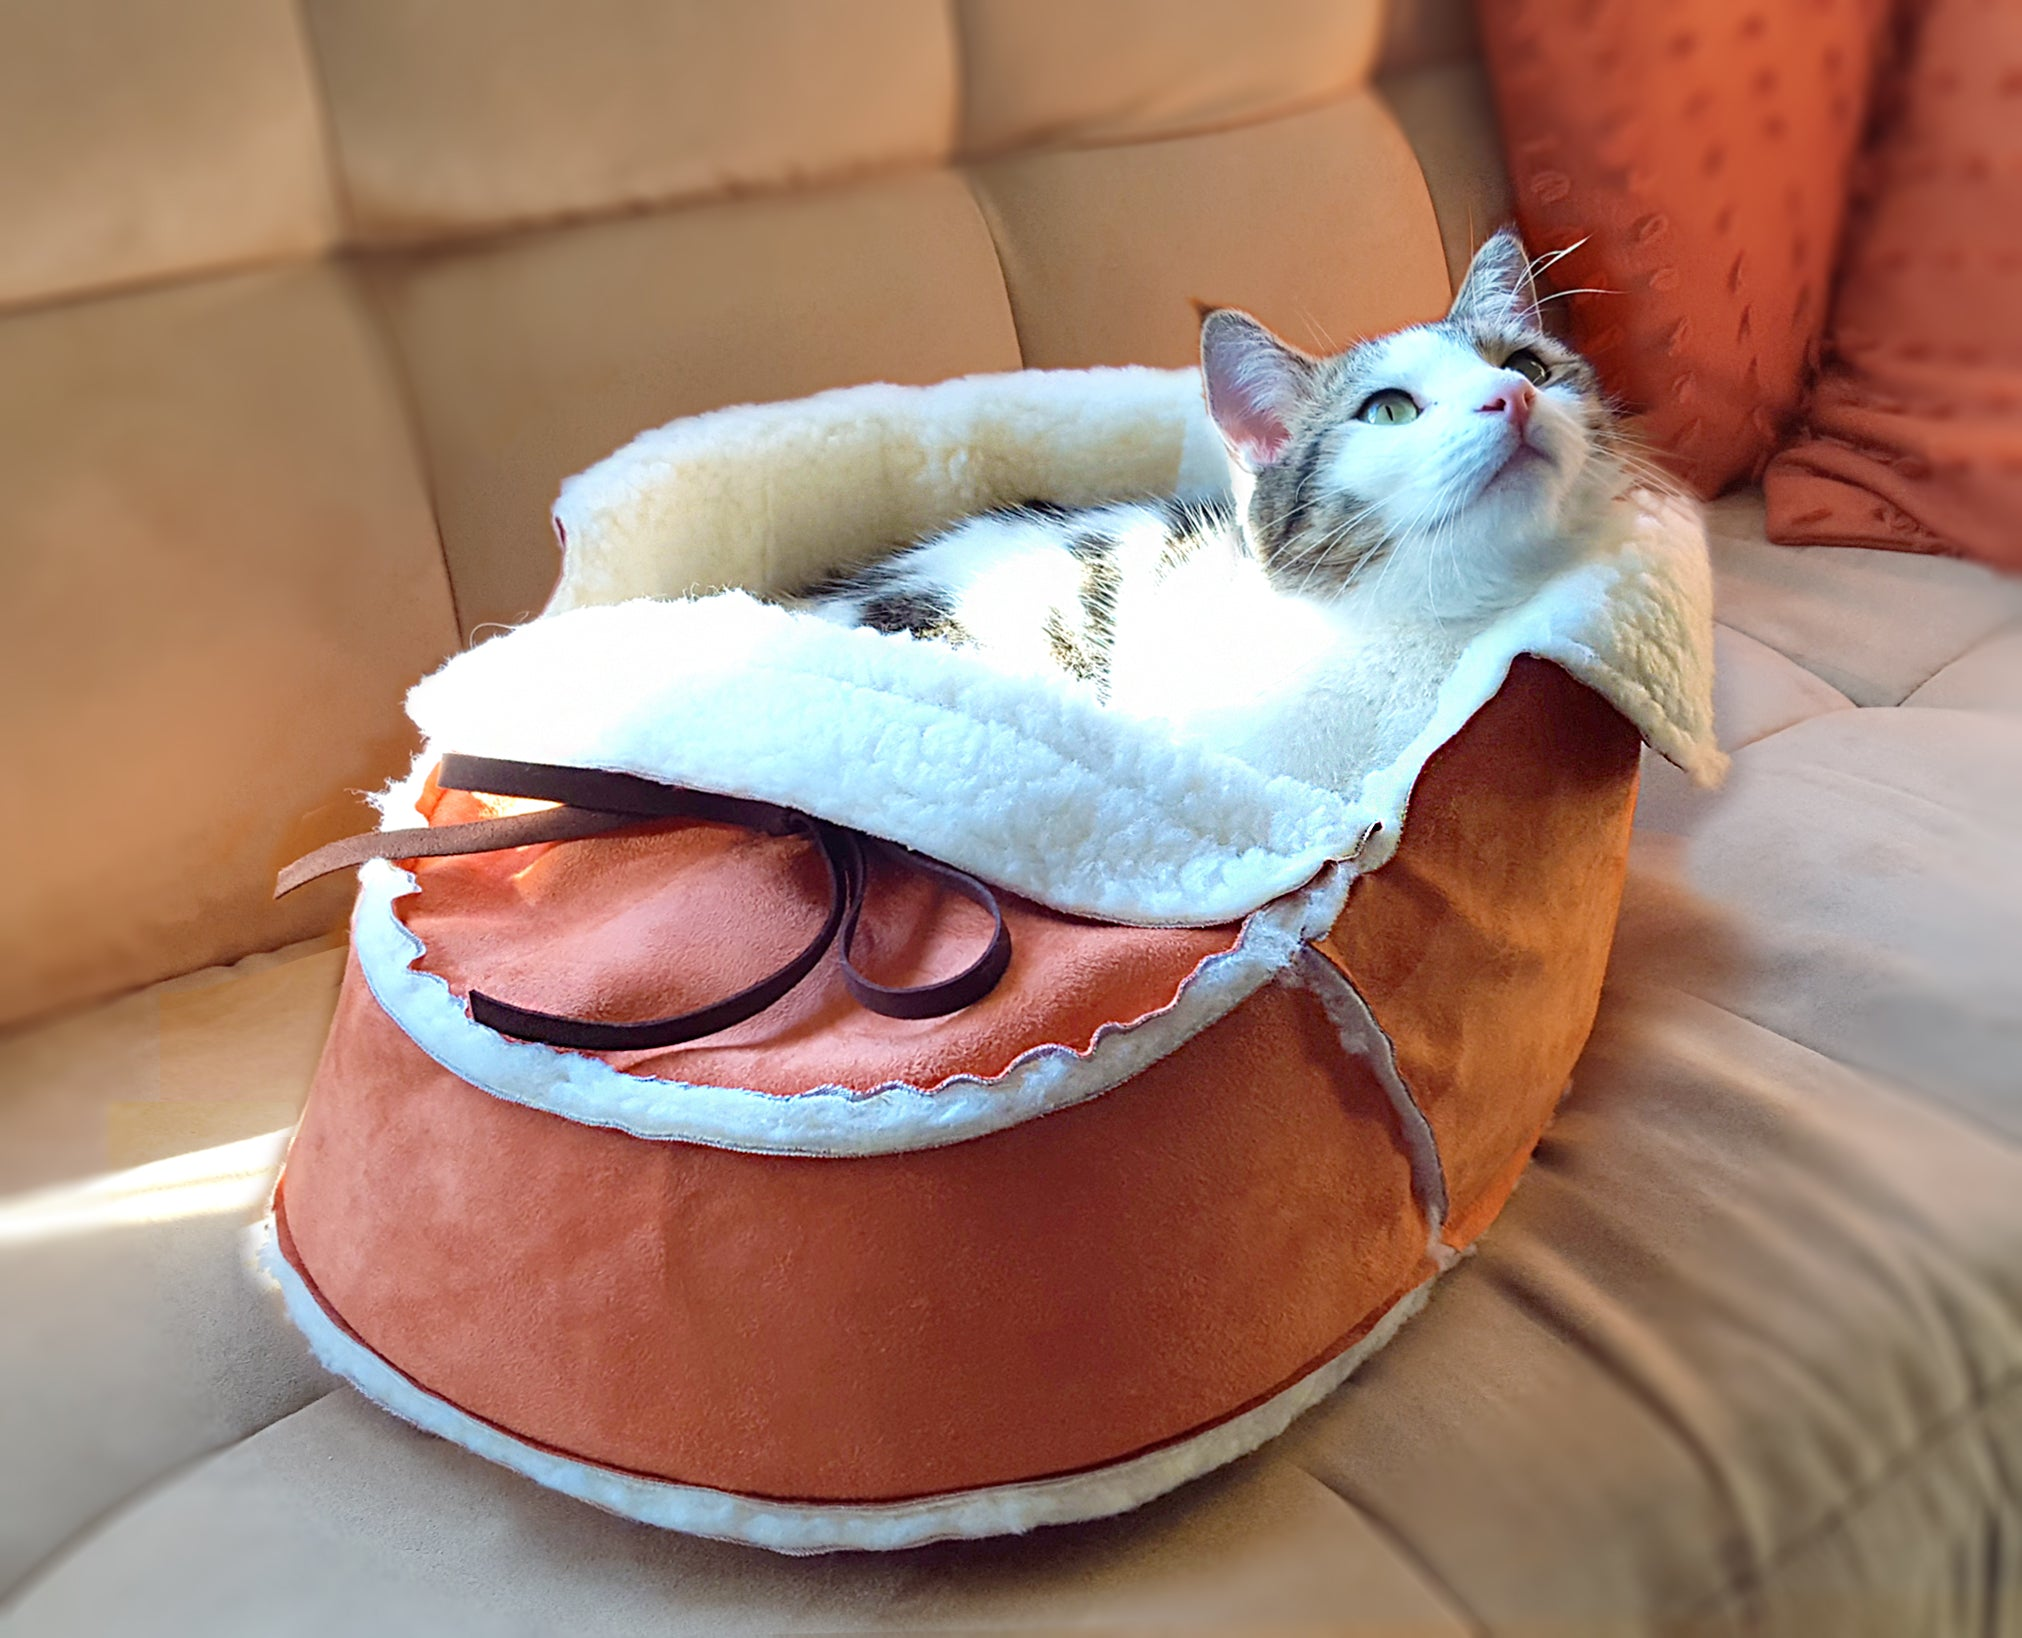 Sherpa Moccasin Cat Bed in Orange with a cat snuggling in it